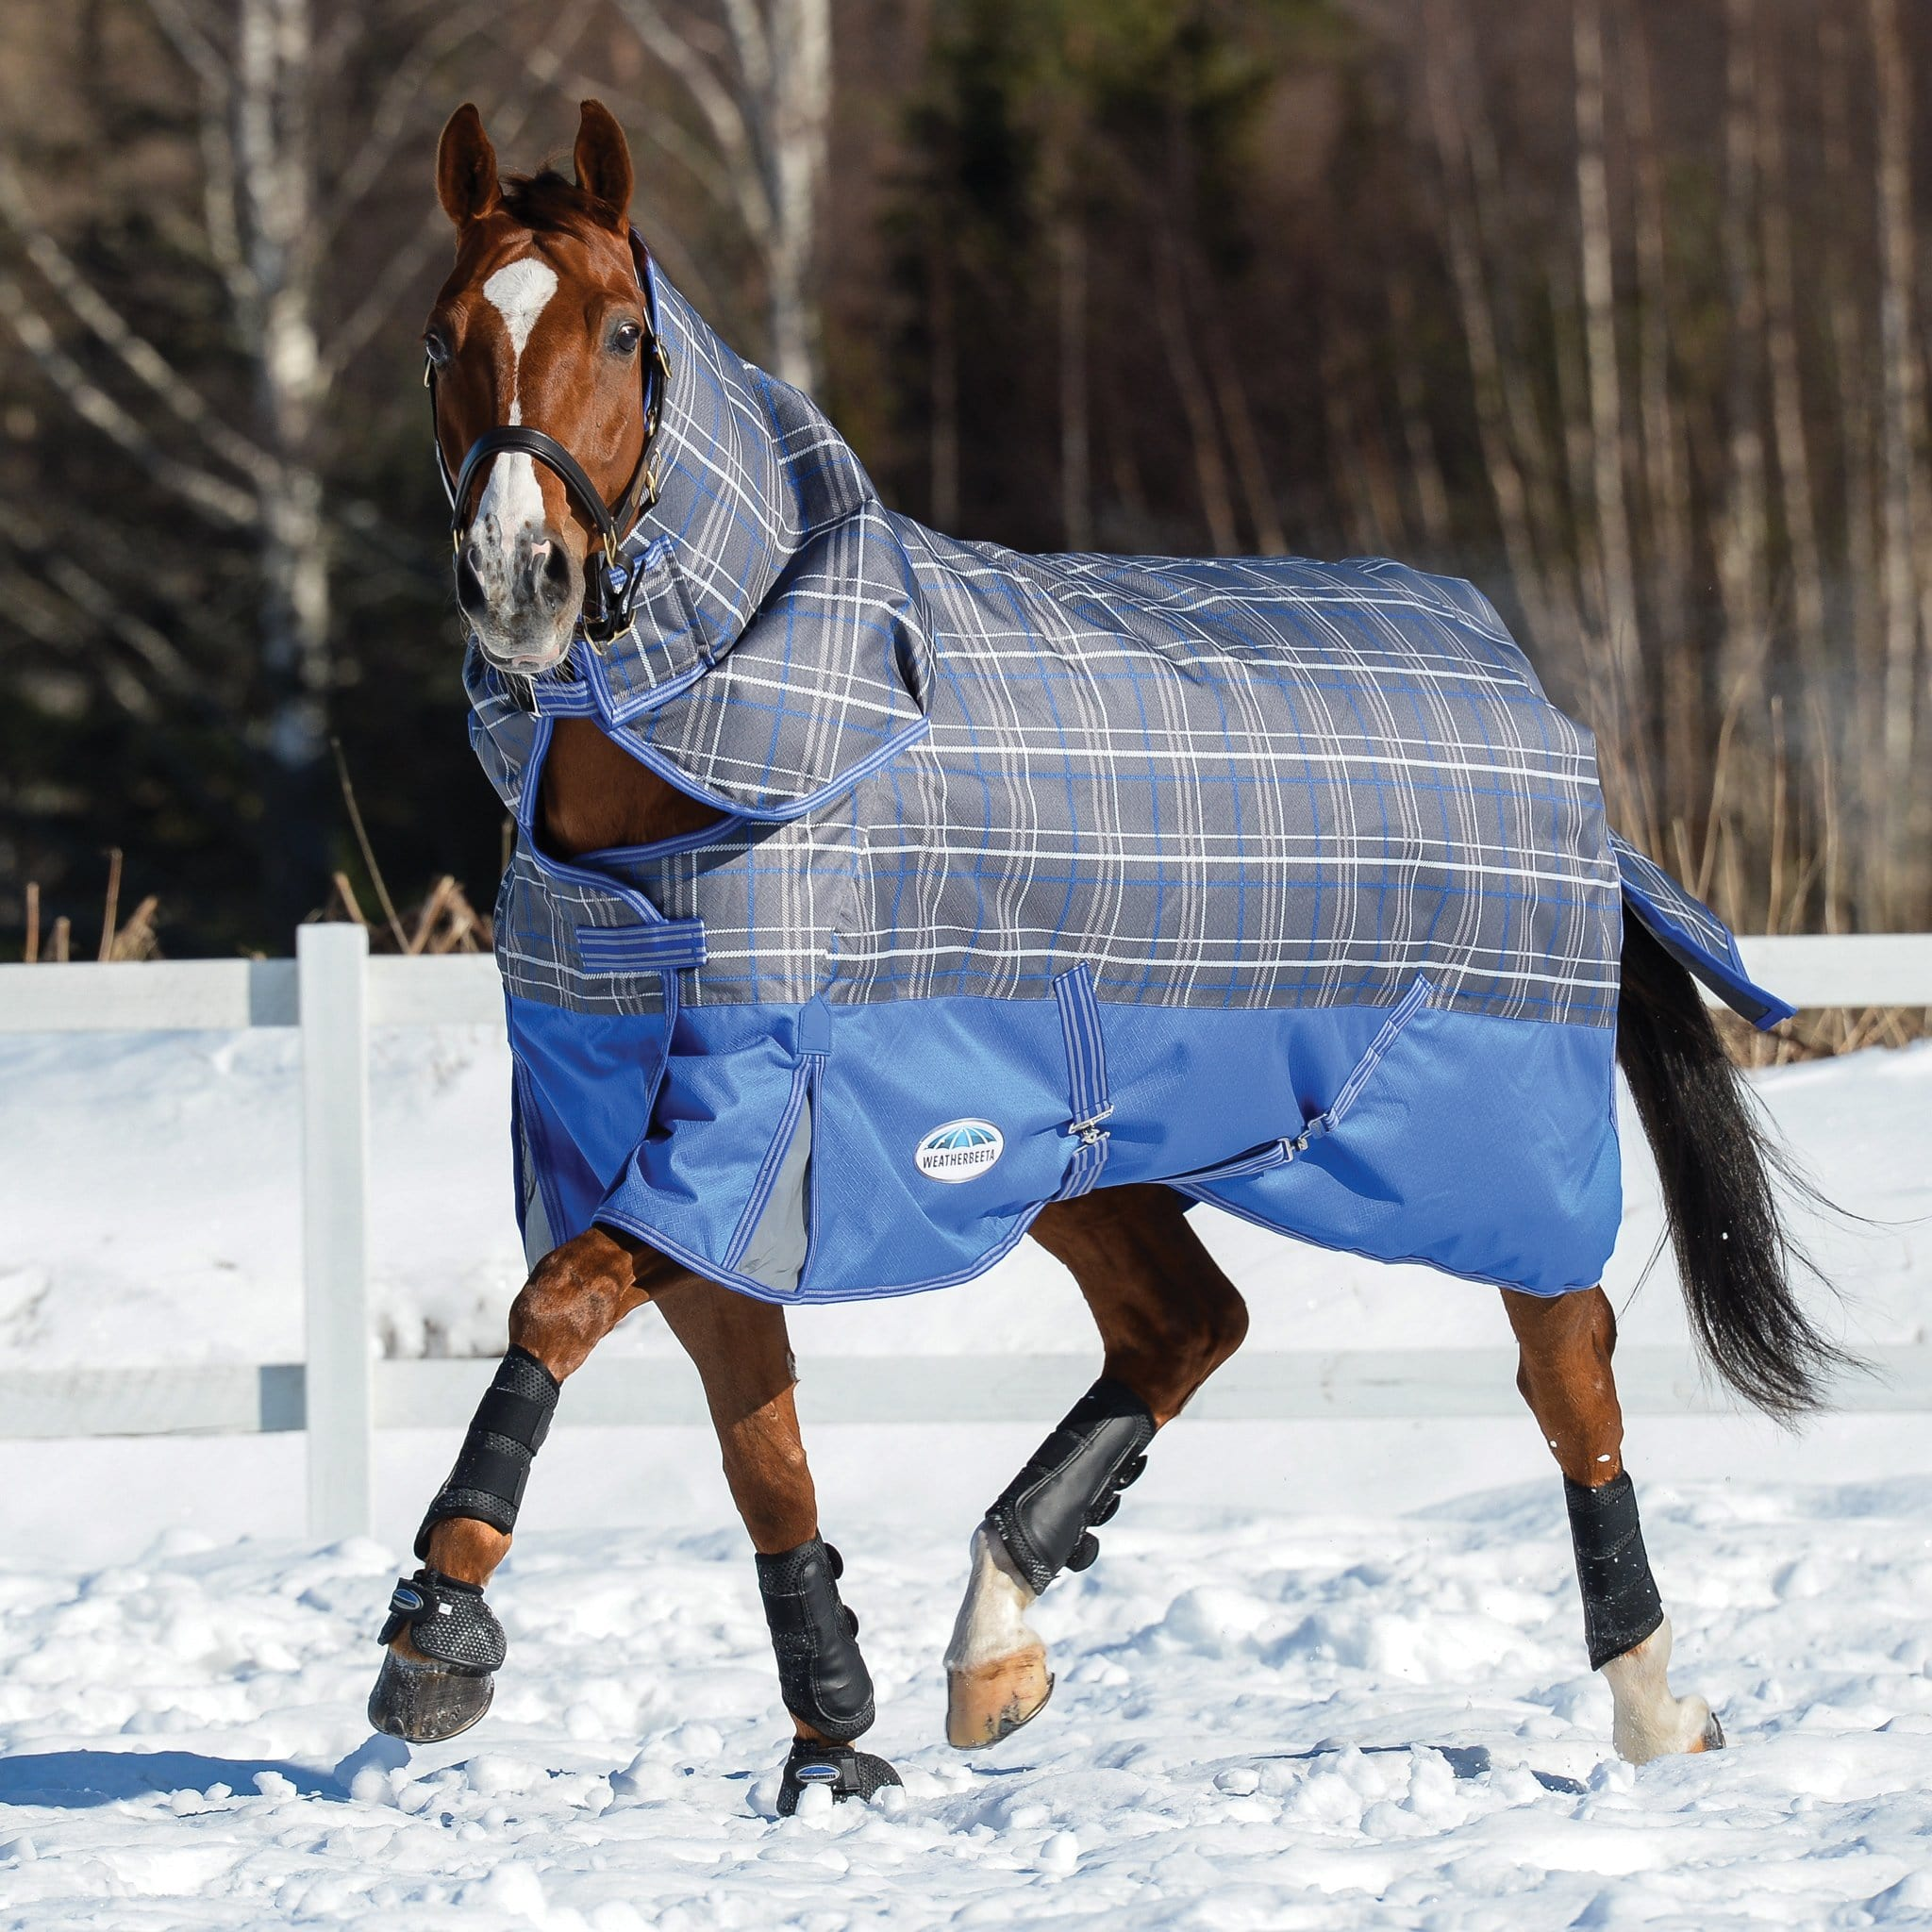 Weatherbeeta ComFiTec Premier Free Mediumweight 220g Detachable Neck Turnout Rug Grey Plaid Trotting in the Snow 801045